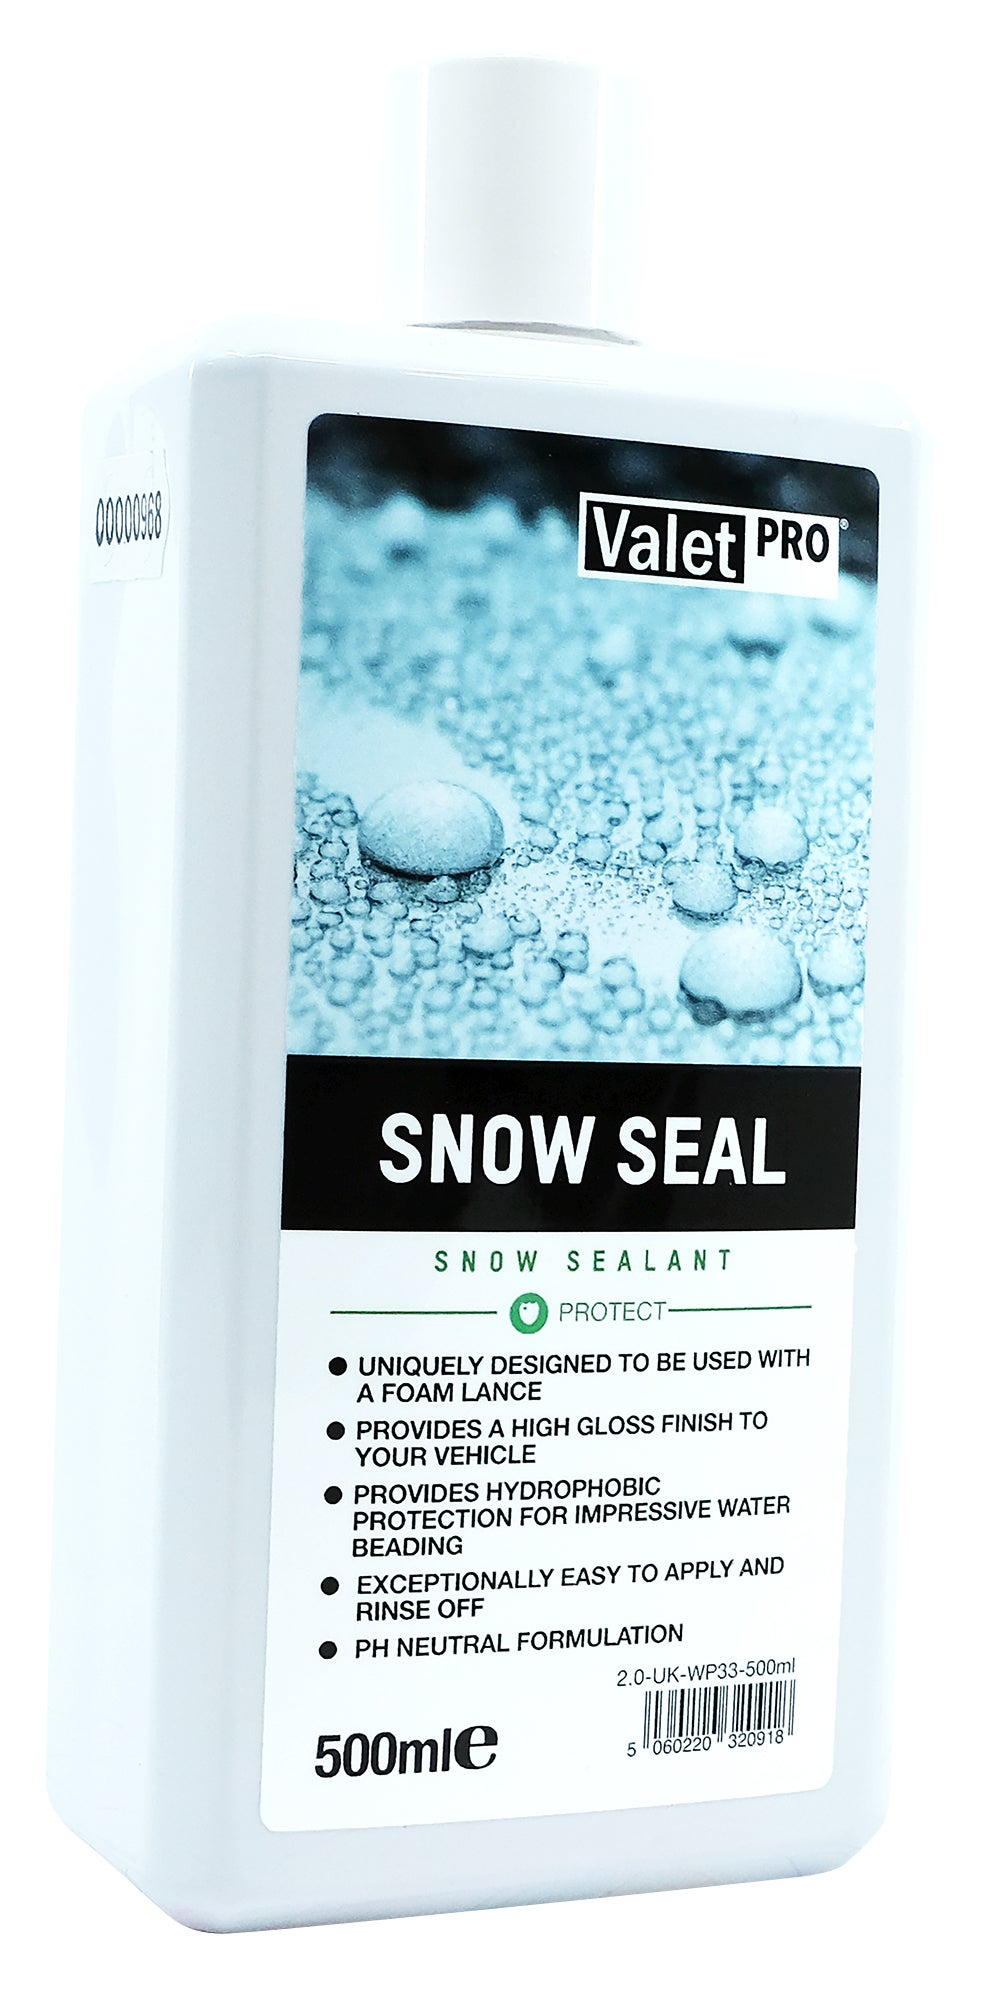 Image of Snow Seal